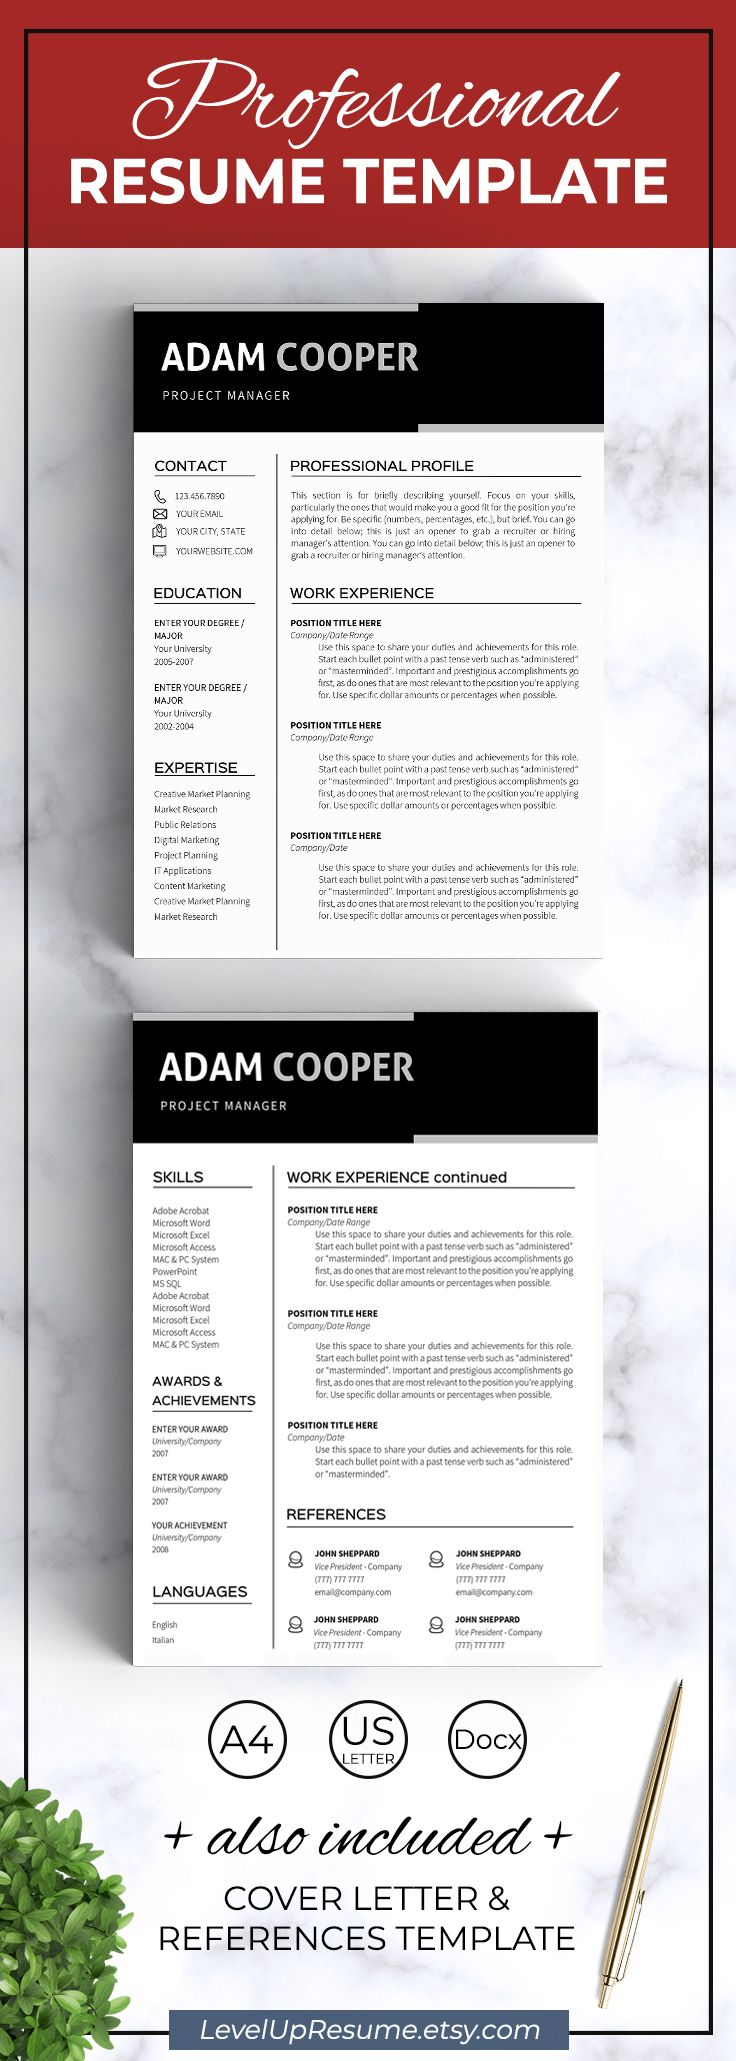 download job resume format%0A Click on the link or save the pin to your board  u   e u   e u   e u   e u   e  career  career  advice  job  jobsearch  resume  resumetemplate   Resume template instant  download